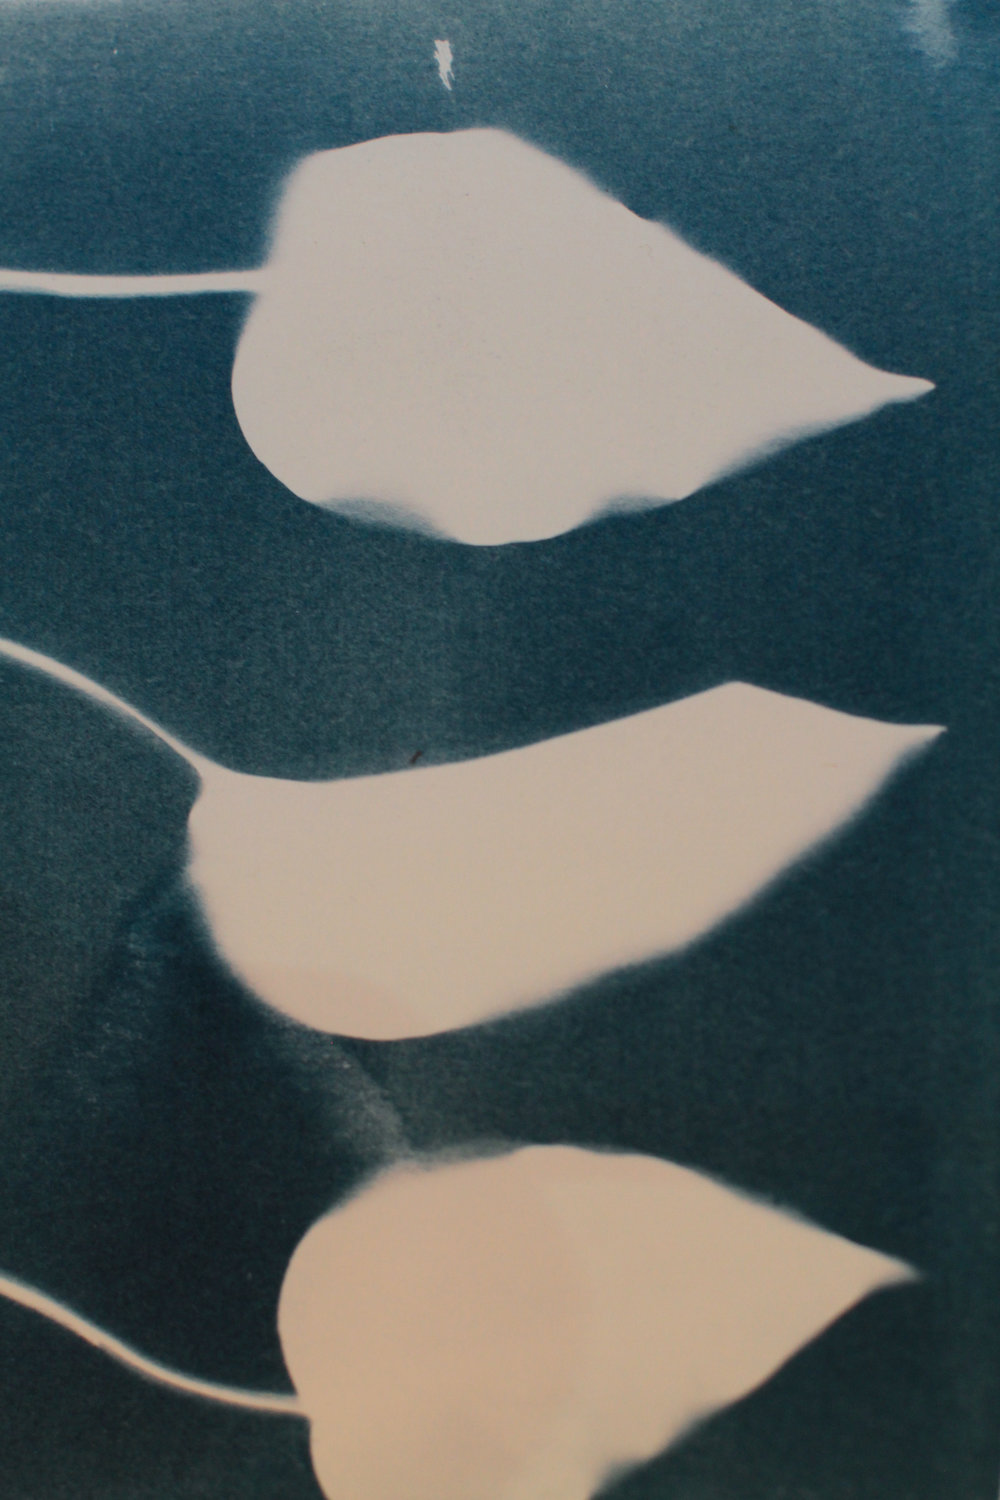 180619_faye_cyanotype_leaves.jpg